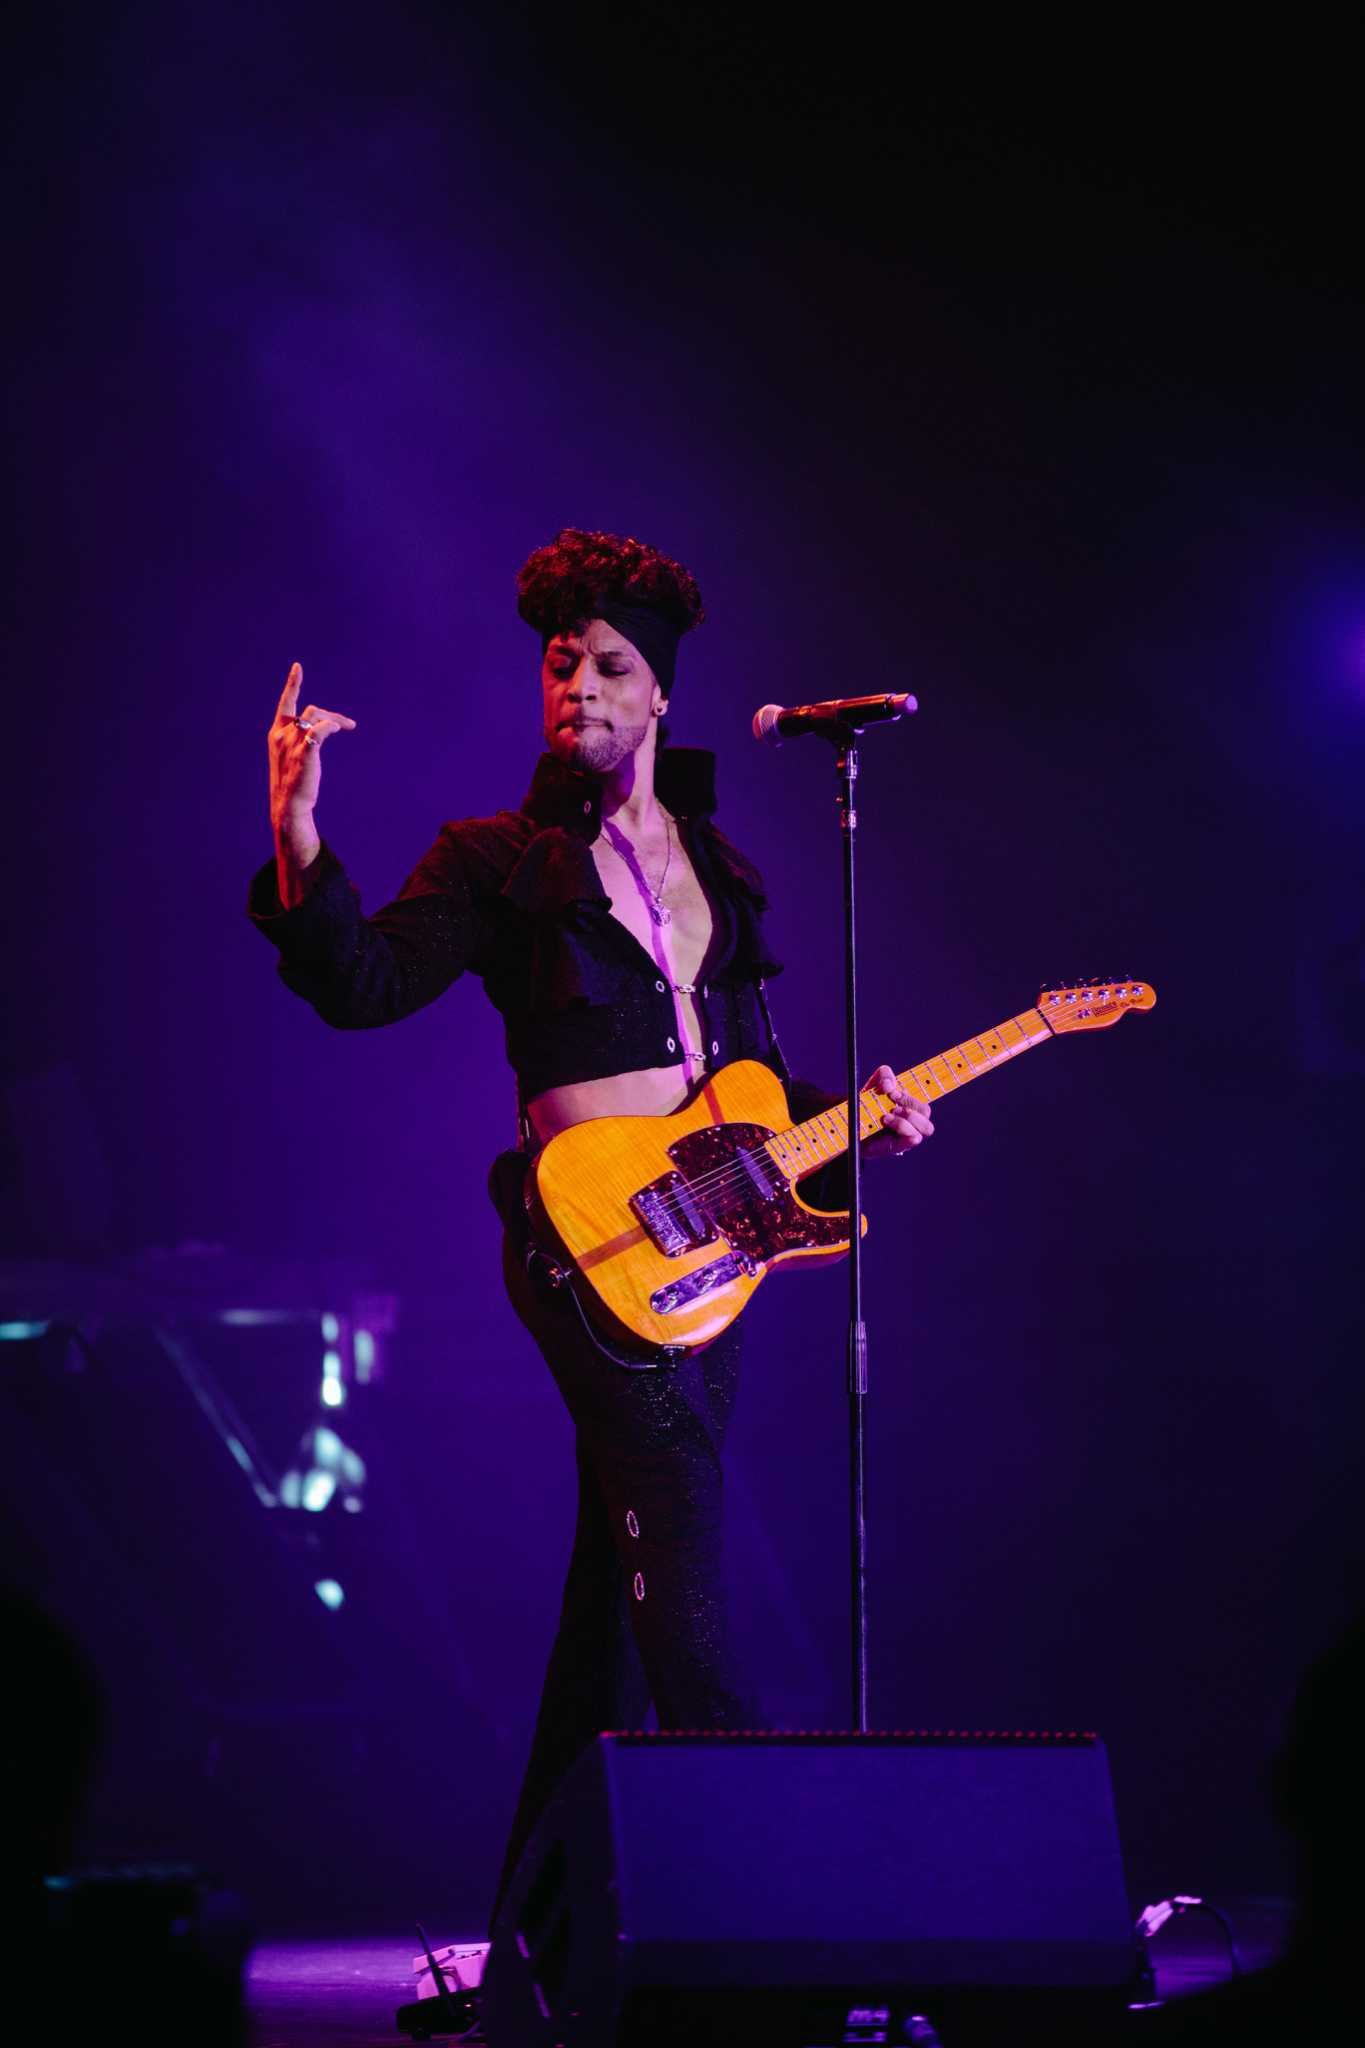 Prince tribute show 'Purple Reign' coming to Shubert in New Haven May 23